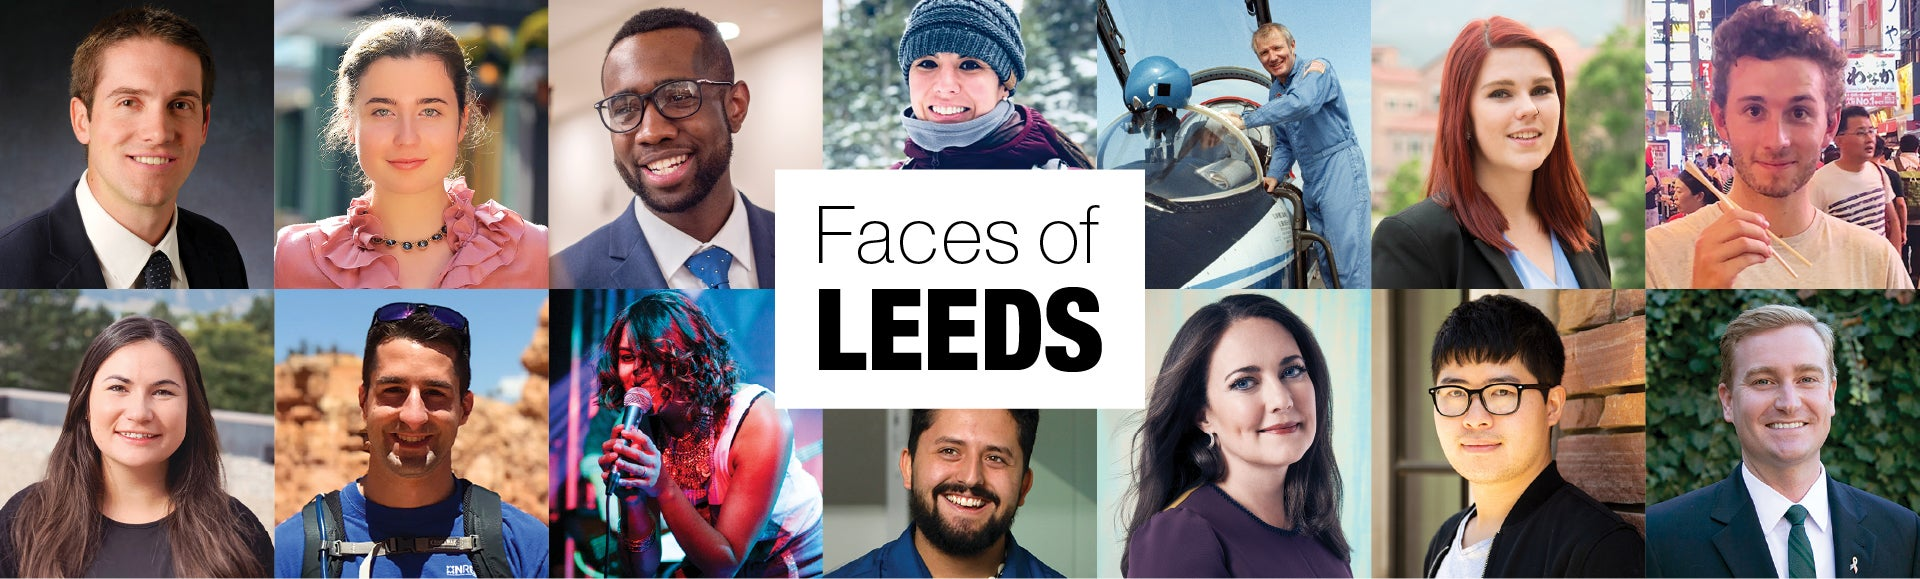 Faces of Leeds